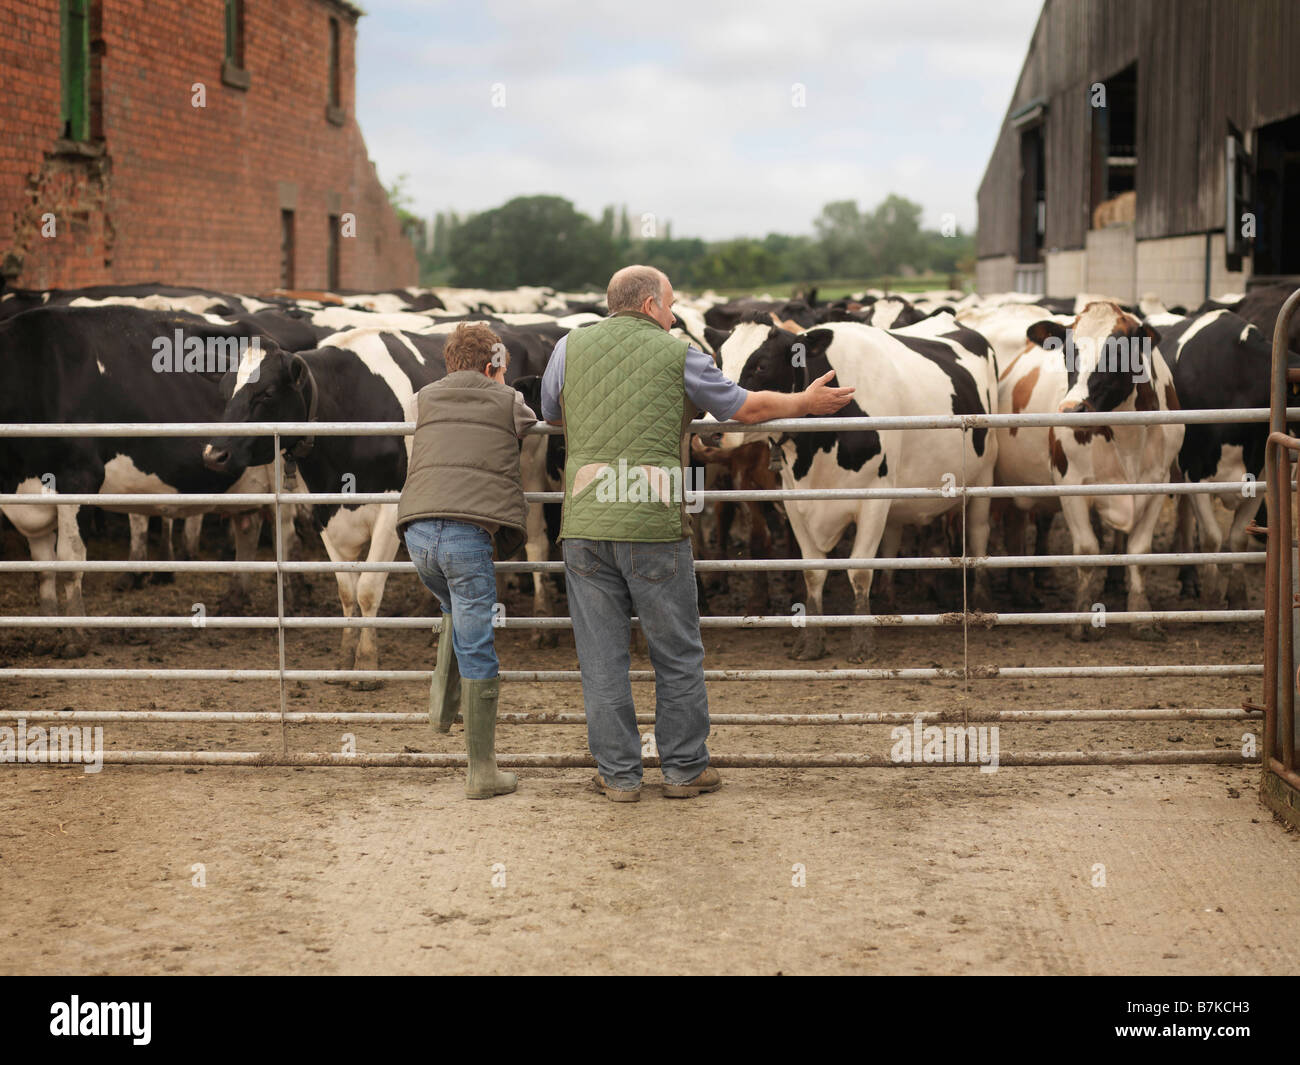 Farmer And Son Looking at Cows Stock Photo